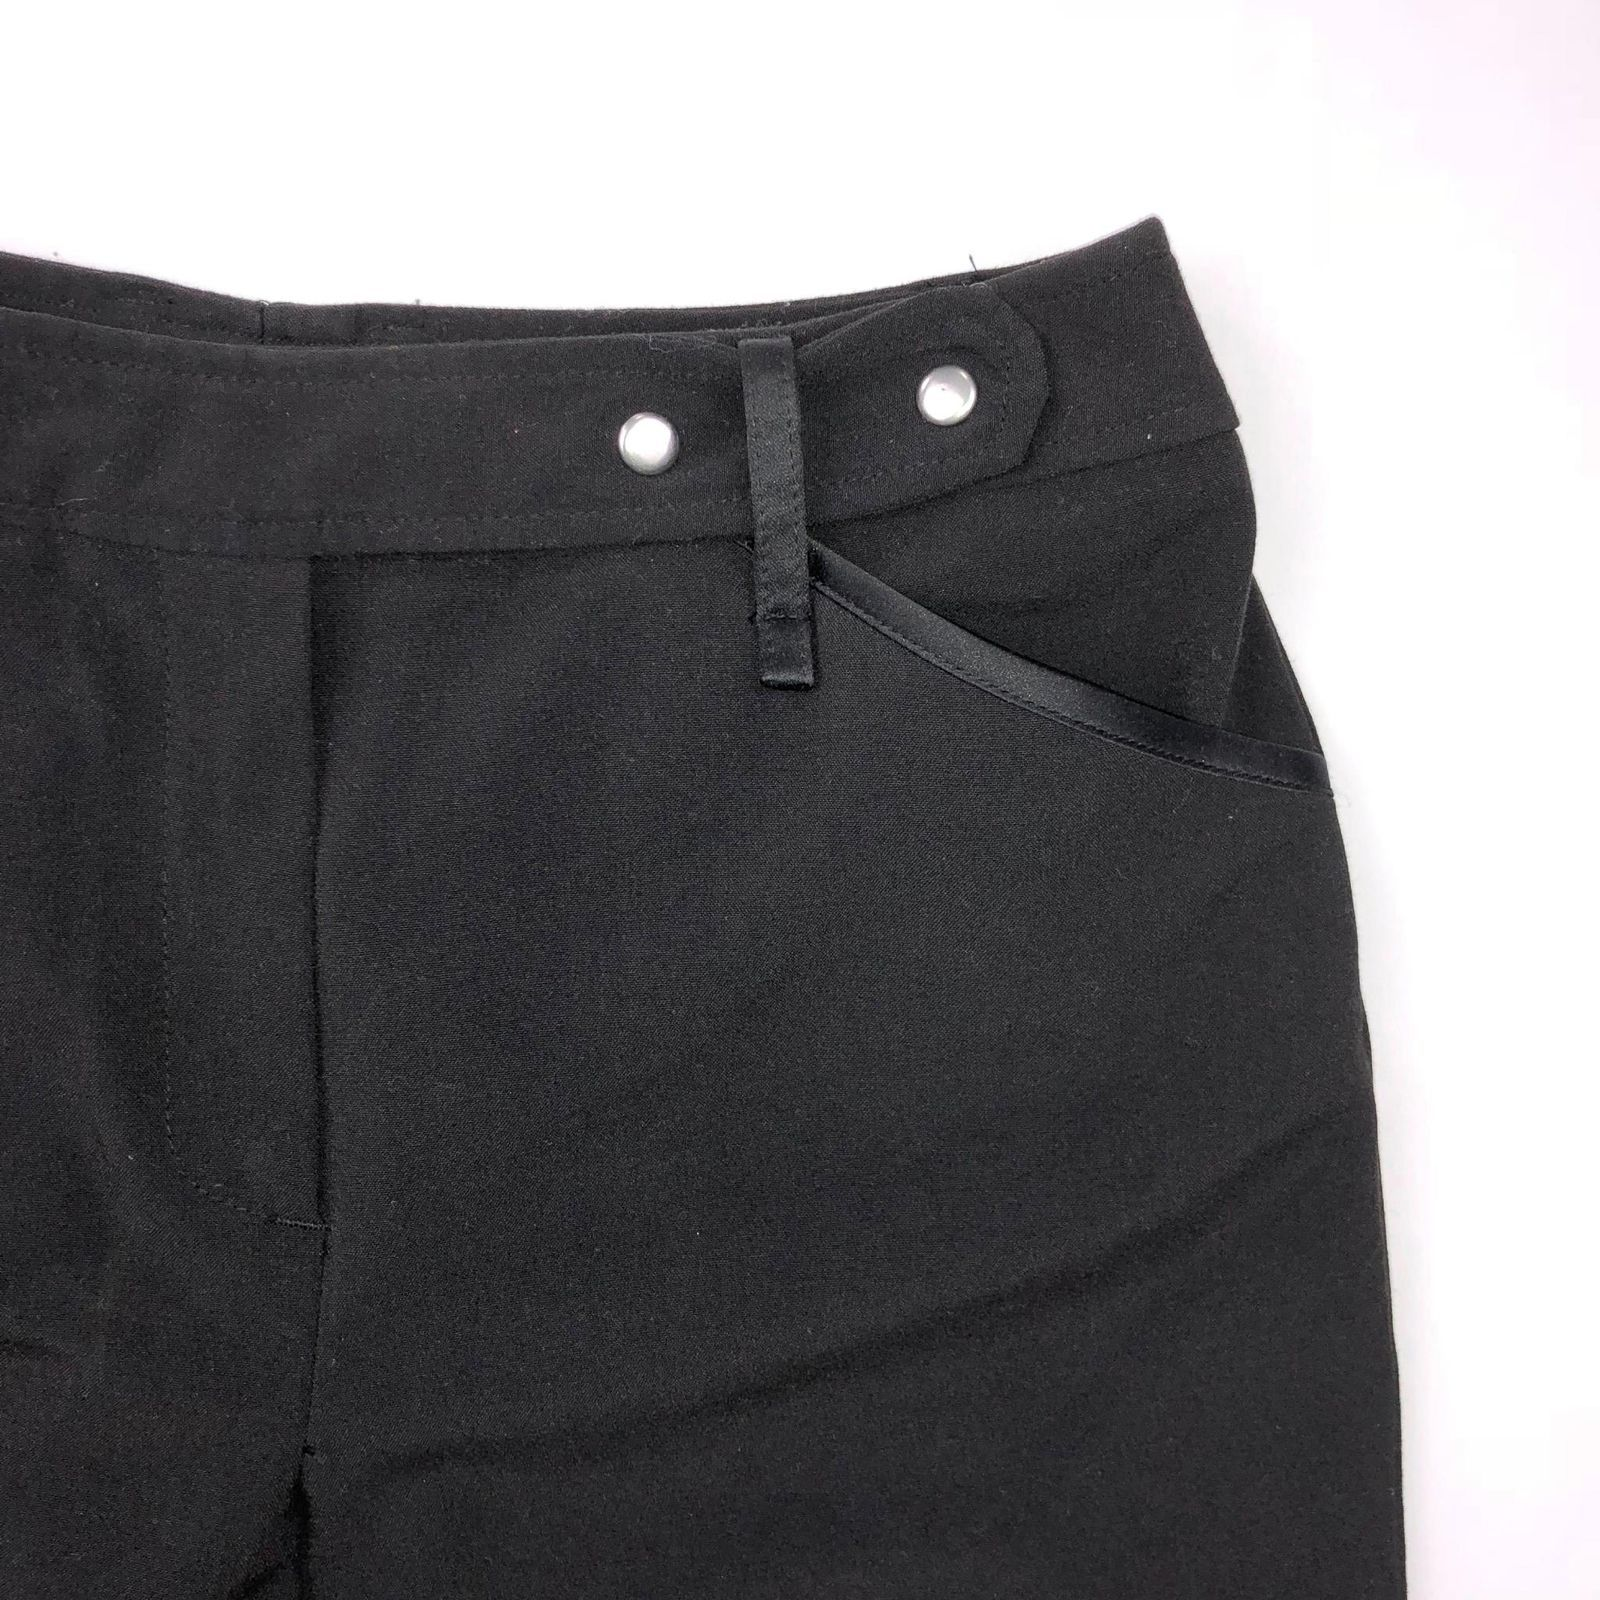 Larry Levine Women's Size 4 Black Stretch Wide Crips Cropped Dress Pants